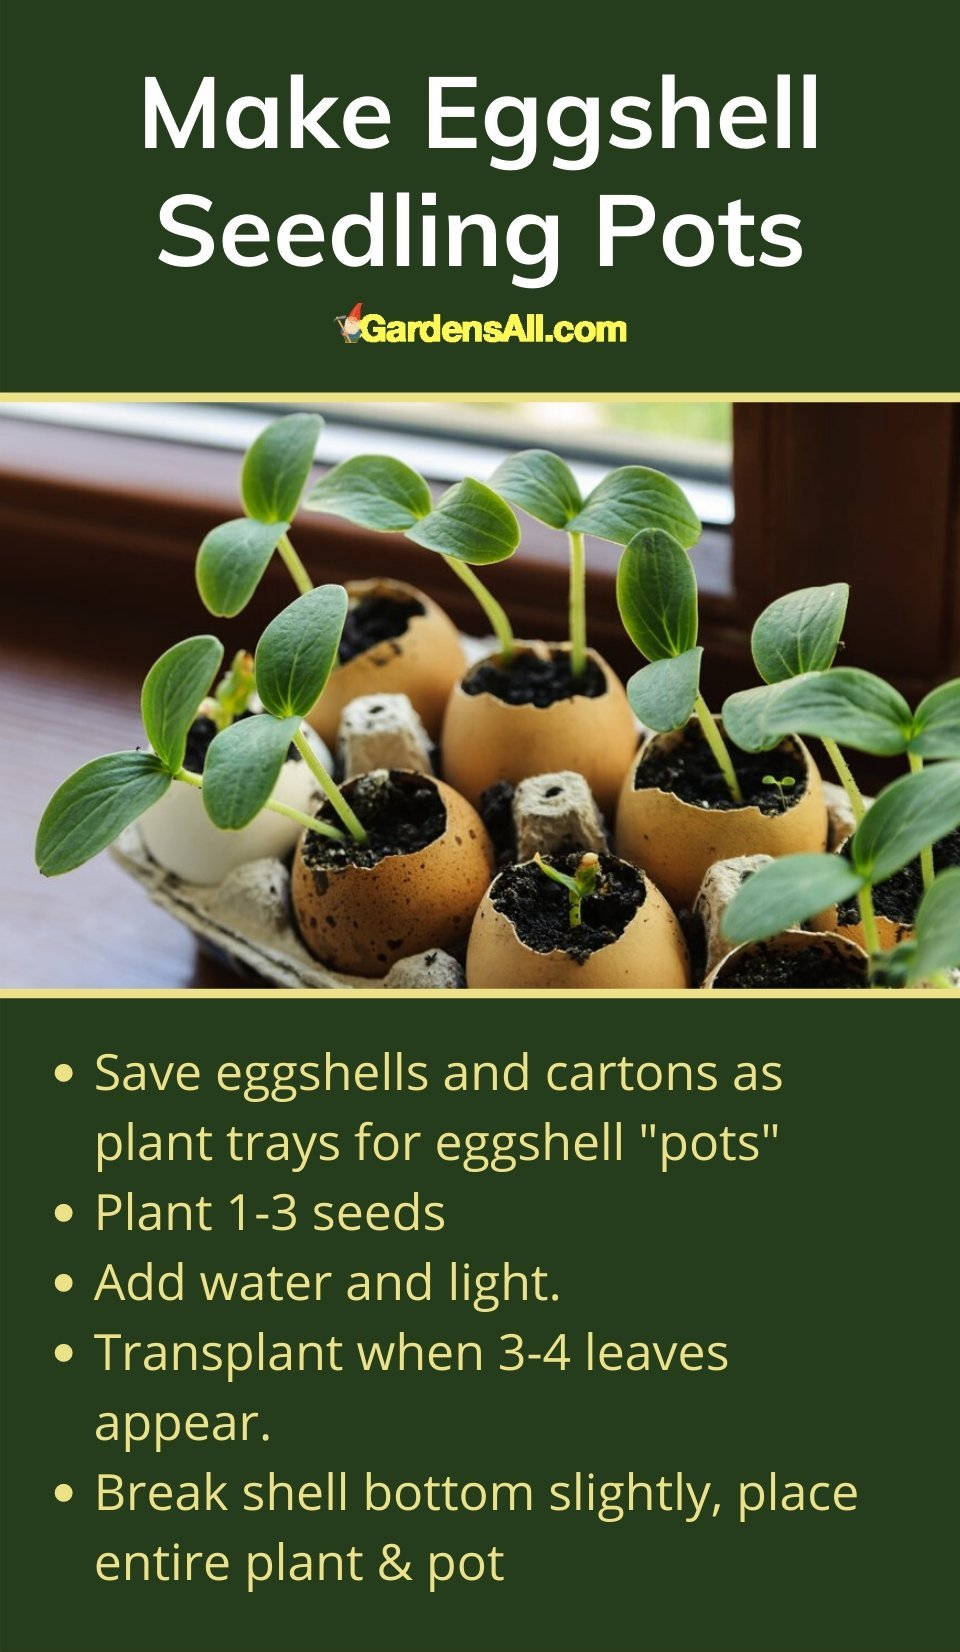 """Eggshell """"pots"""" for seedlings is a fun, free and efficient garden hack for sowing seeds. Yes, it's not as efficient as a seedling tray, however it's free and we love how it recycles both the eggshells into garden nutrients and comes with a self-contained plant tray as well. #IndoorGarden #Planters #GardenIdeas #GardenTips #GardenTools #ContainerGardening #Gardening"""